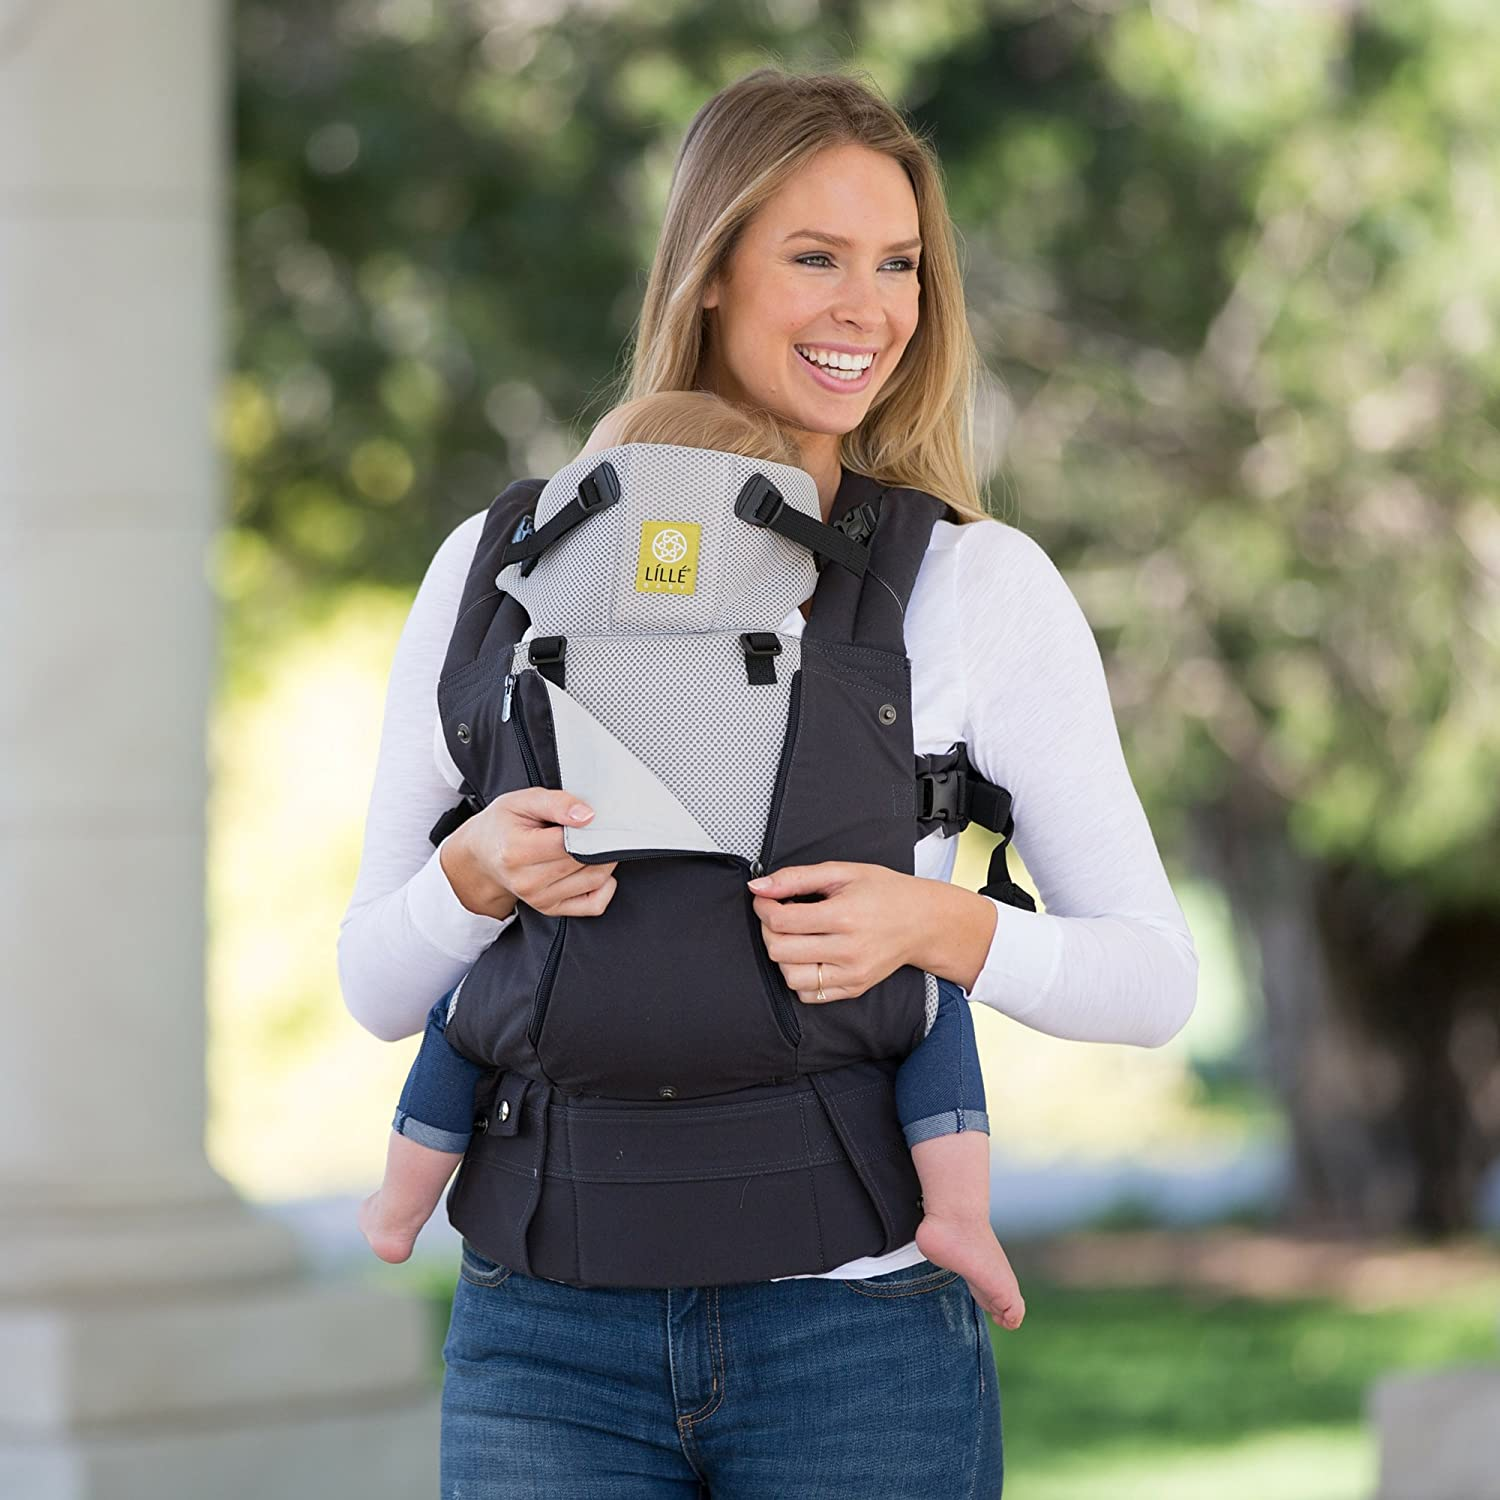 78273ee370e Lillebaby Airflow and Lillebaby All Season carrier are both baby carriers  produced by The LILLEbaby Company. The company is famous for designing and  ...